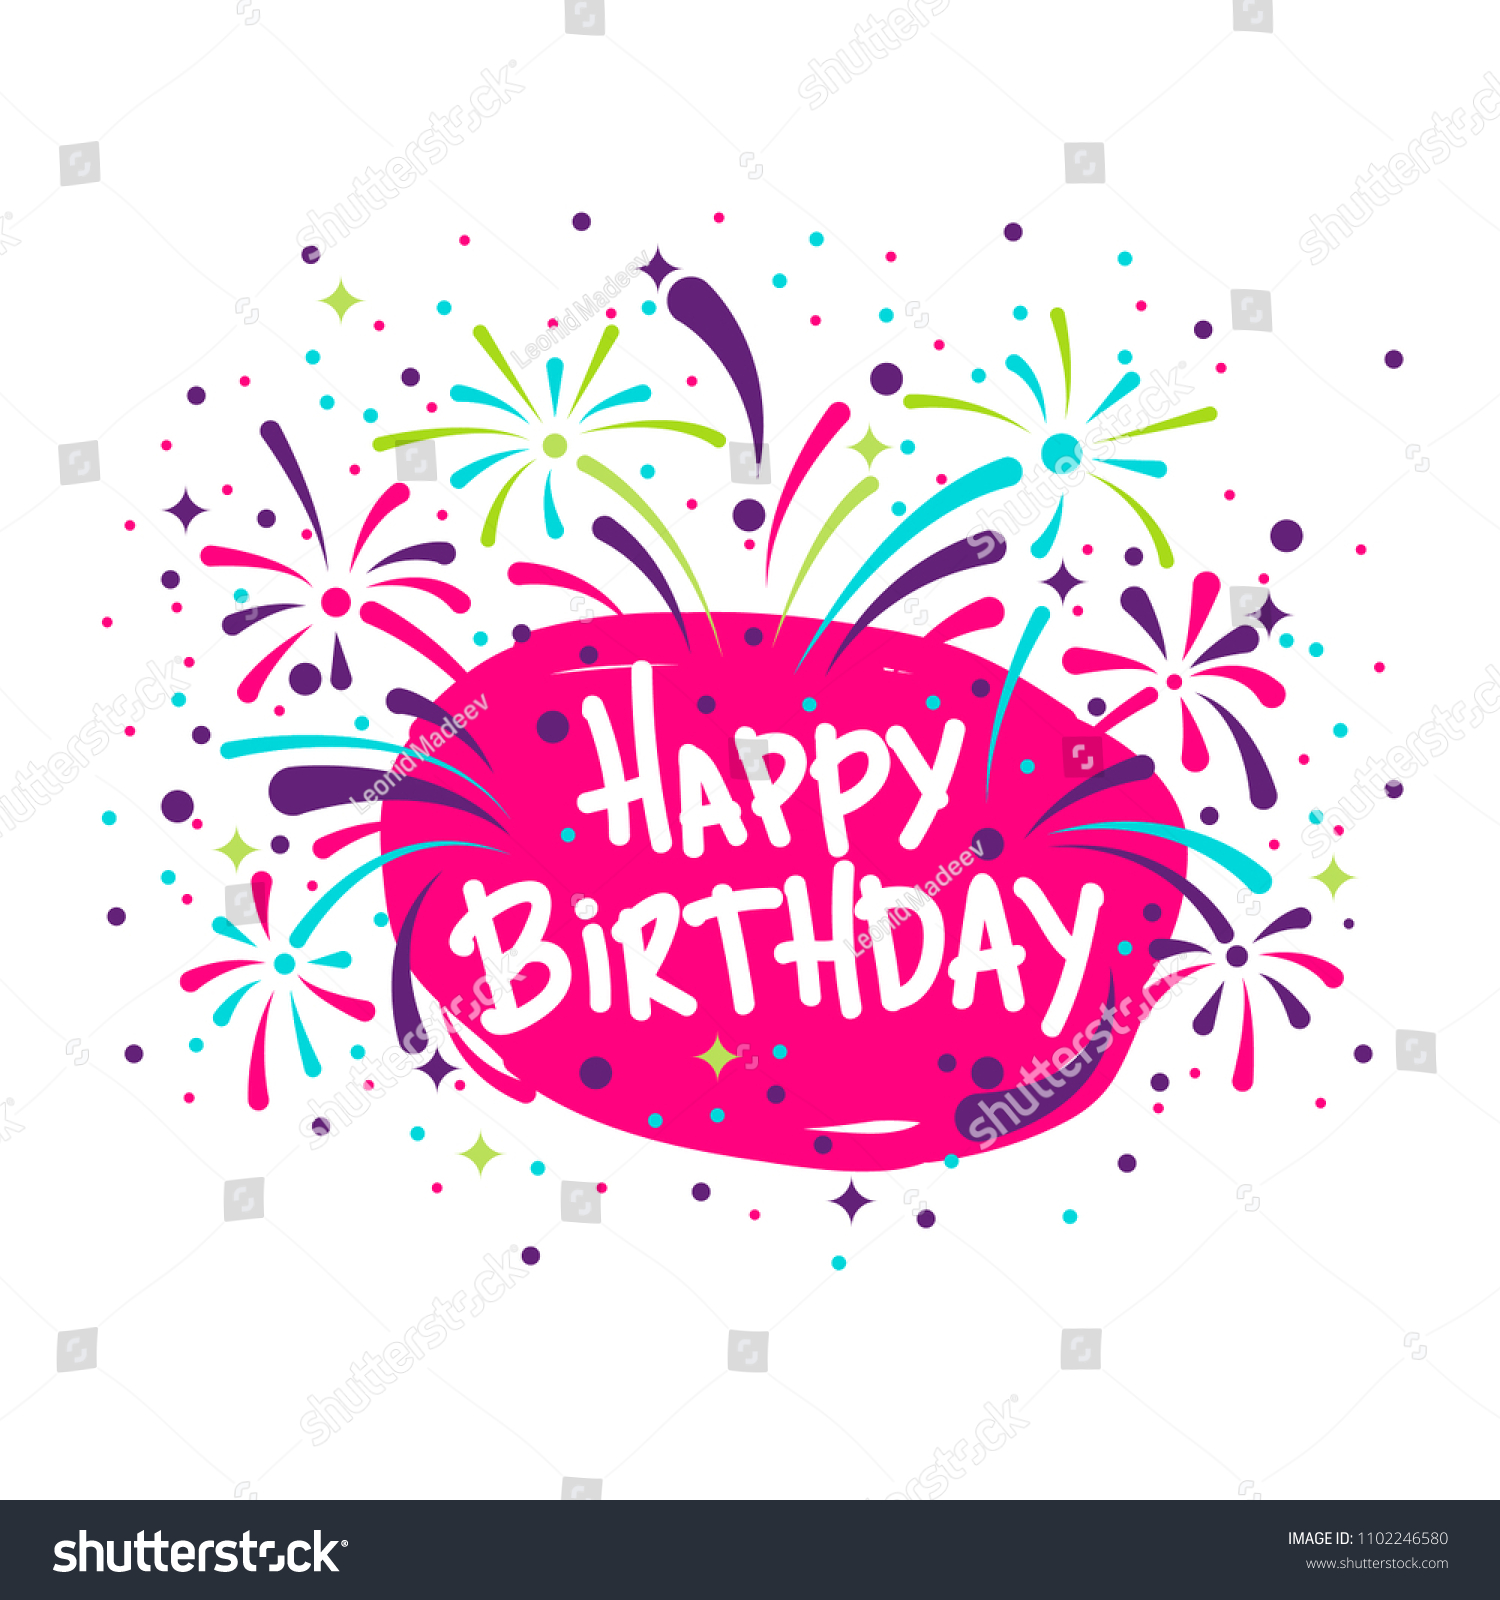 Vector Image Birthday Greetings Confetti Fireworks Stock Vector